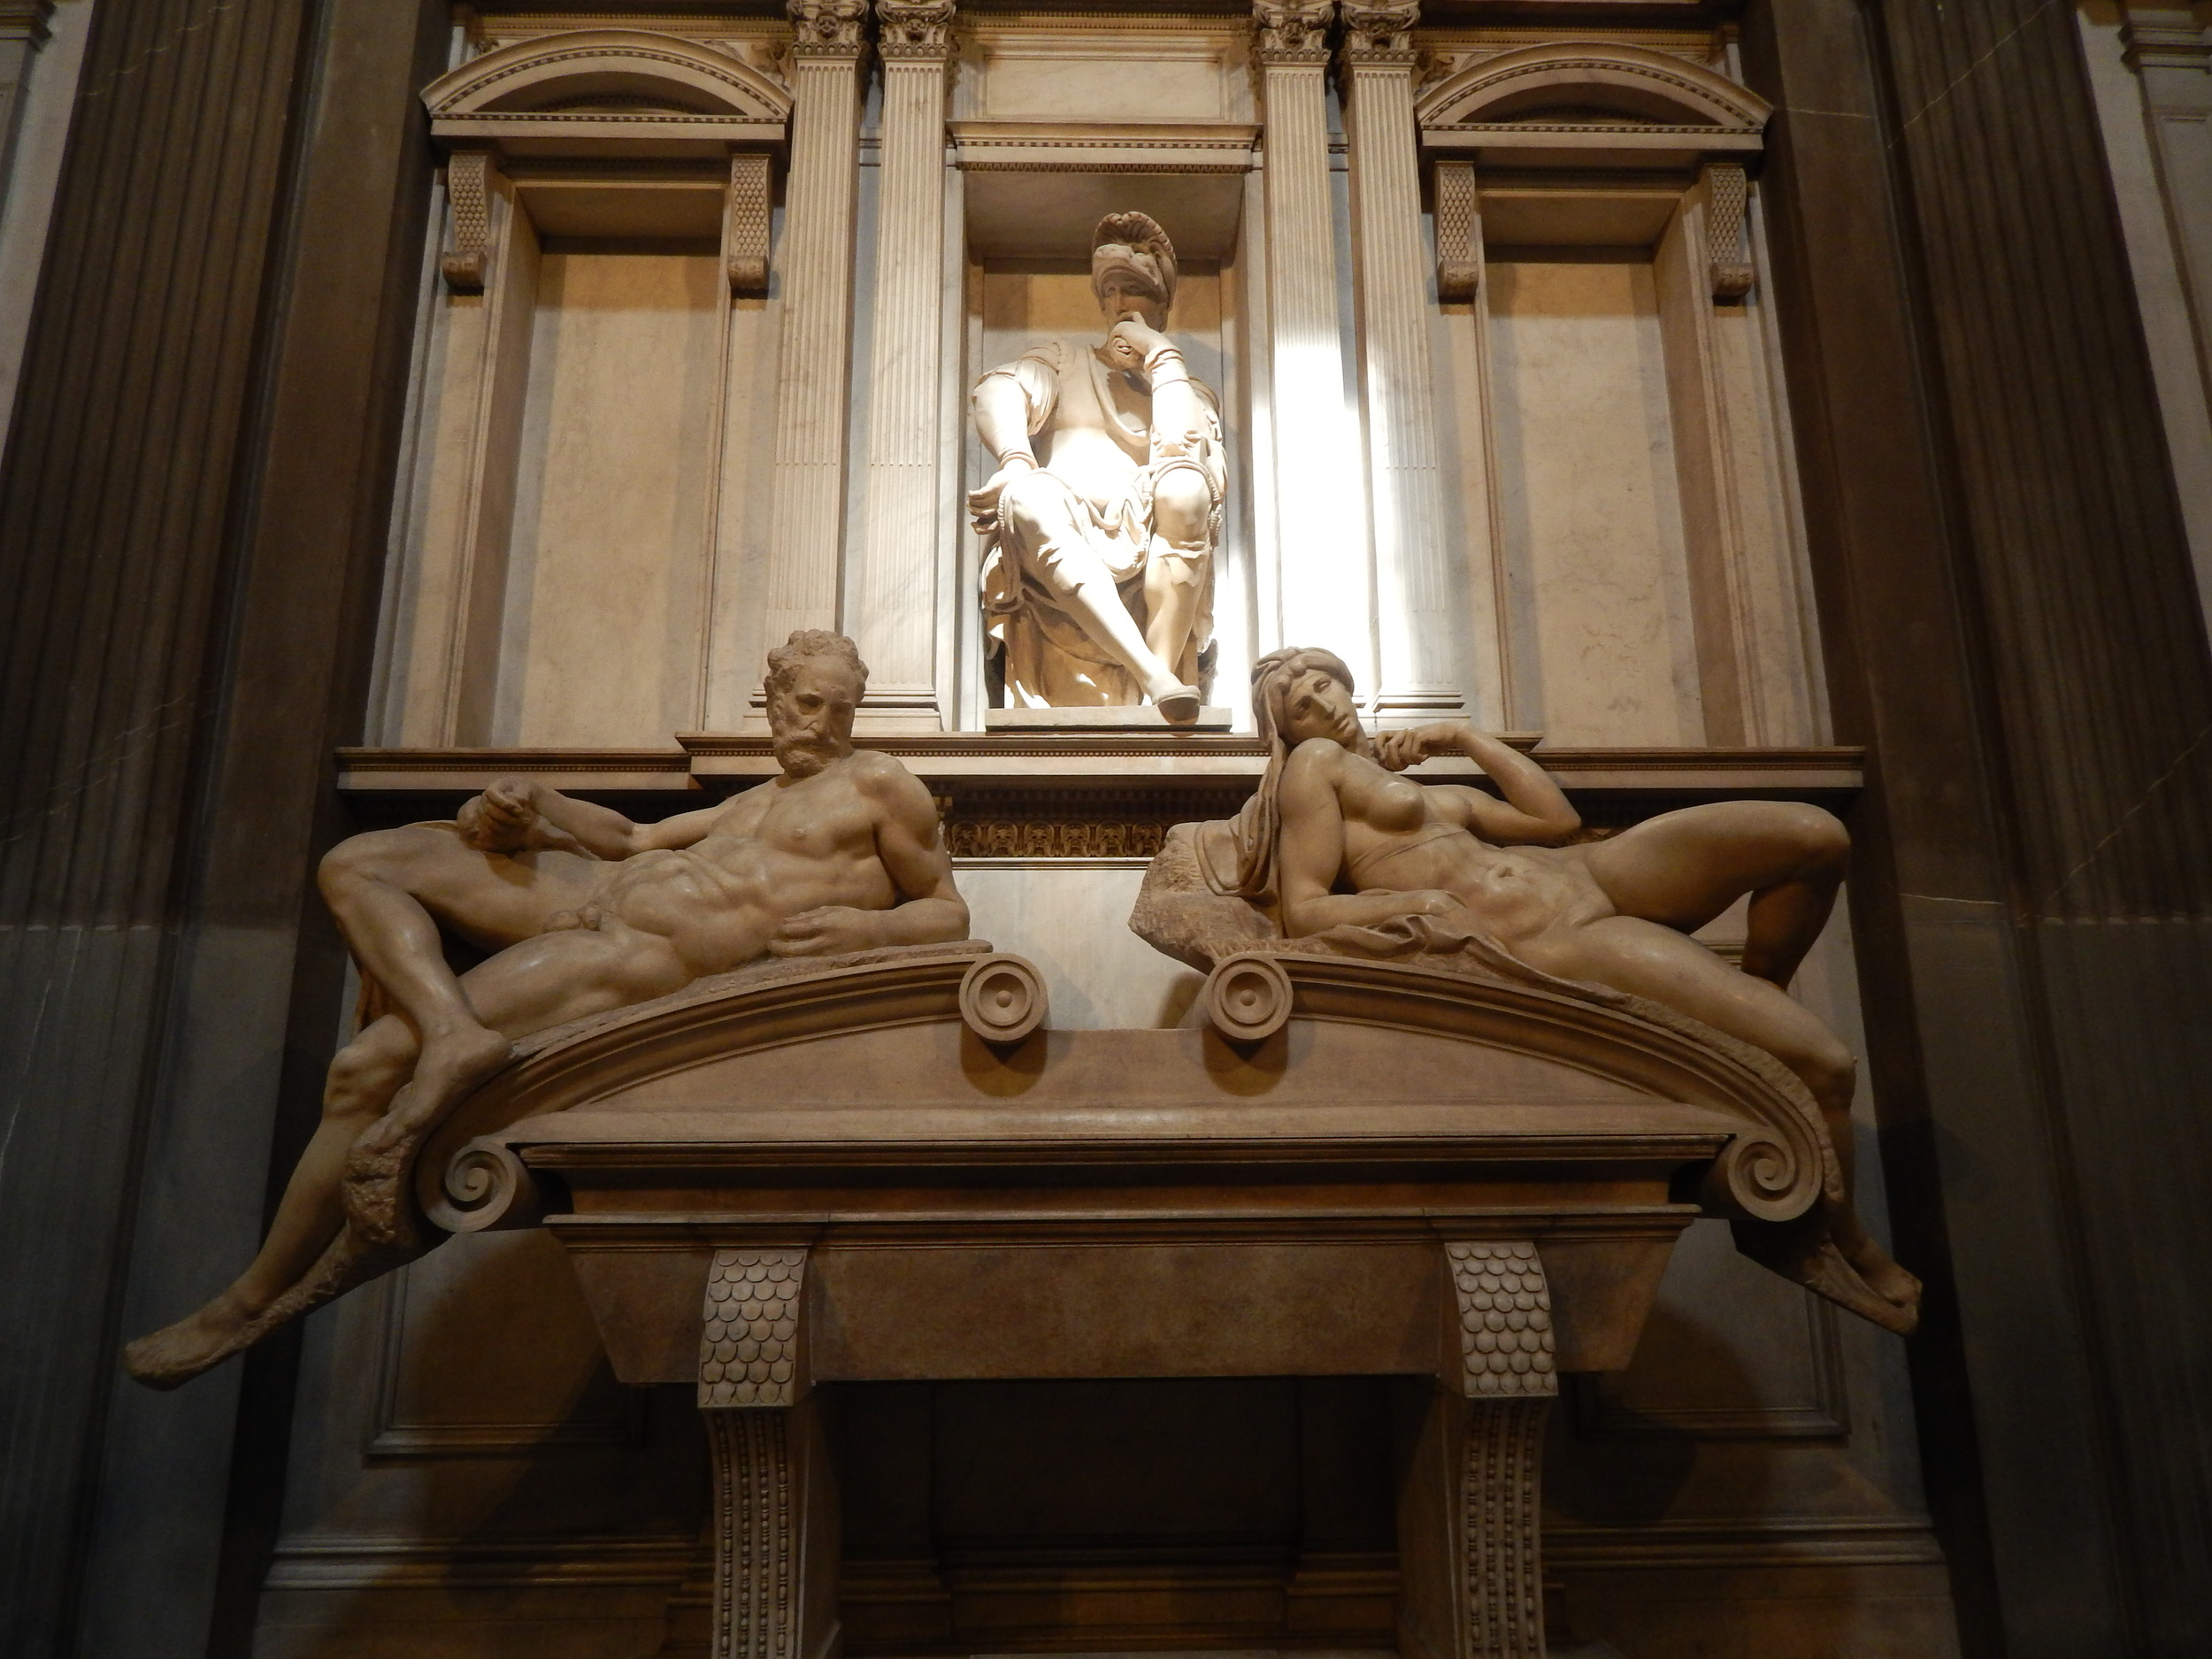 Tomb artistry by Michelangelo for Lorenzo the Magnificent di Medici